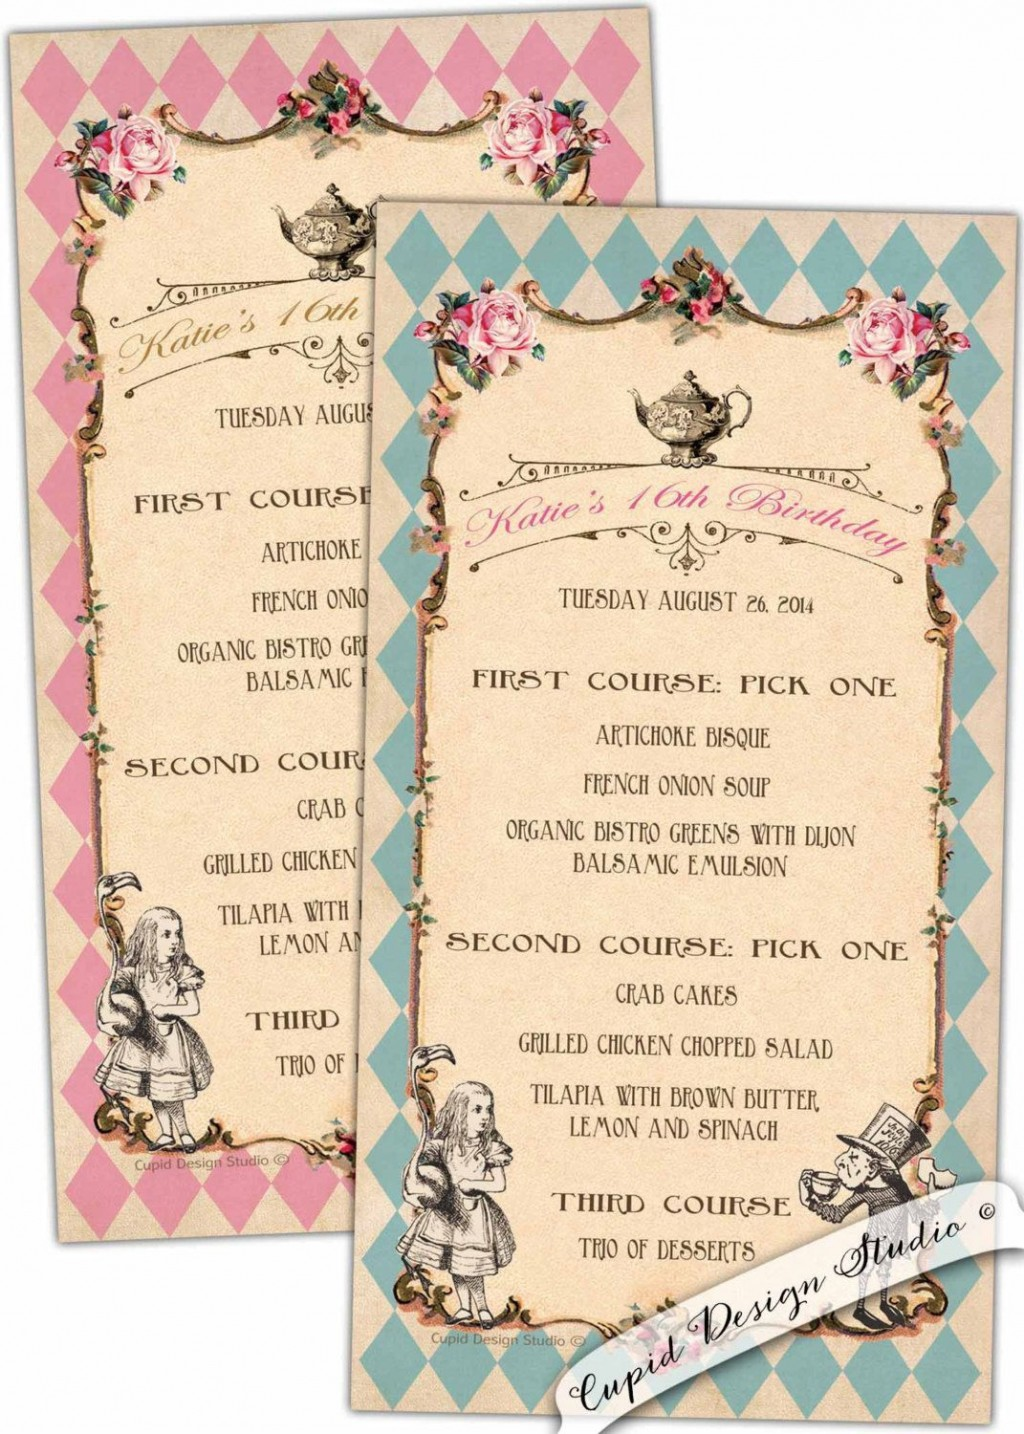 002 Stunning Alice In Wonderland Party Template Example  Templates Invitation FreeLarge